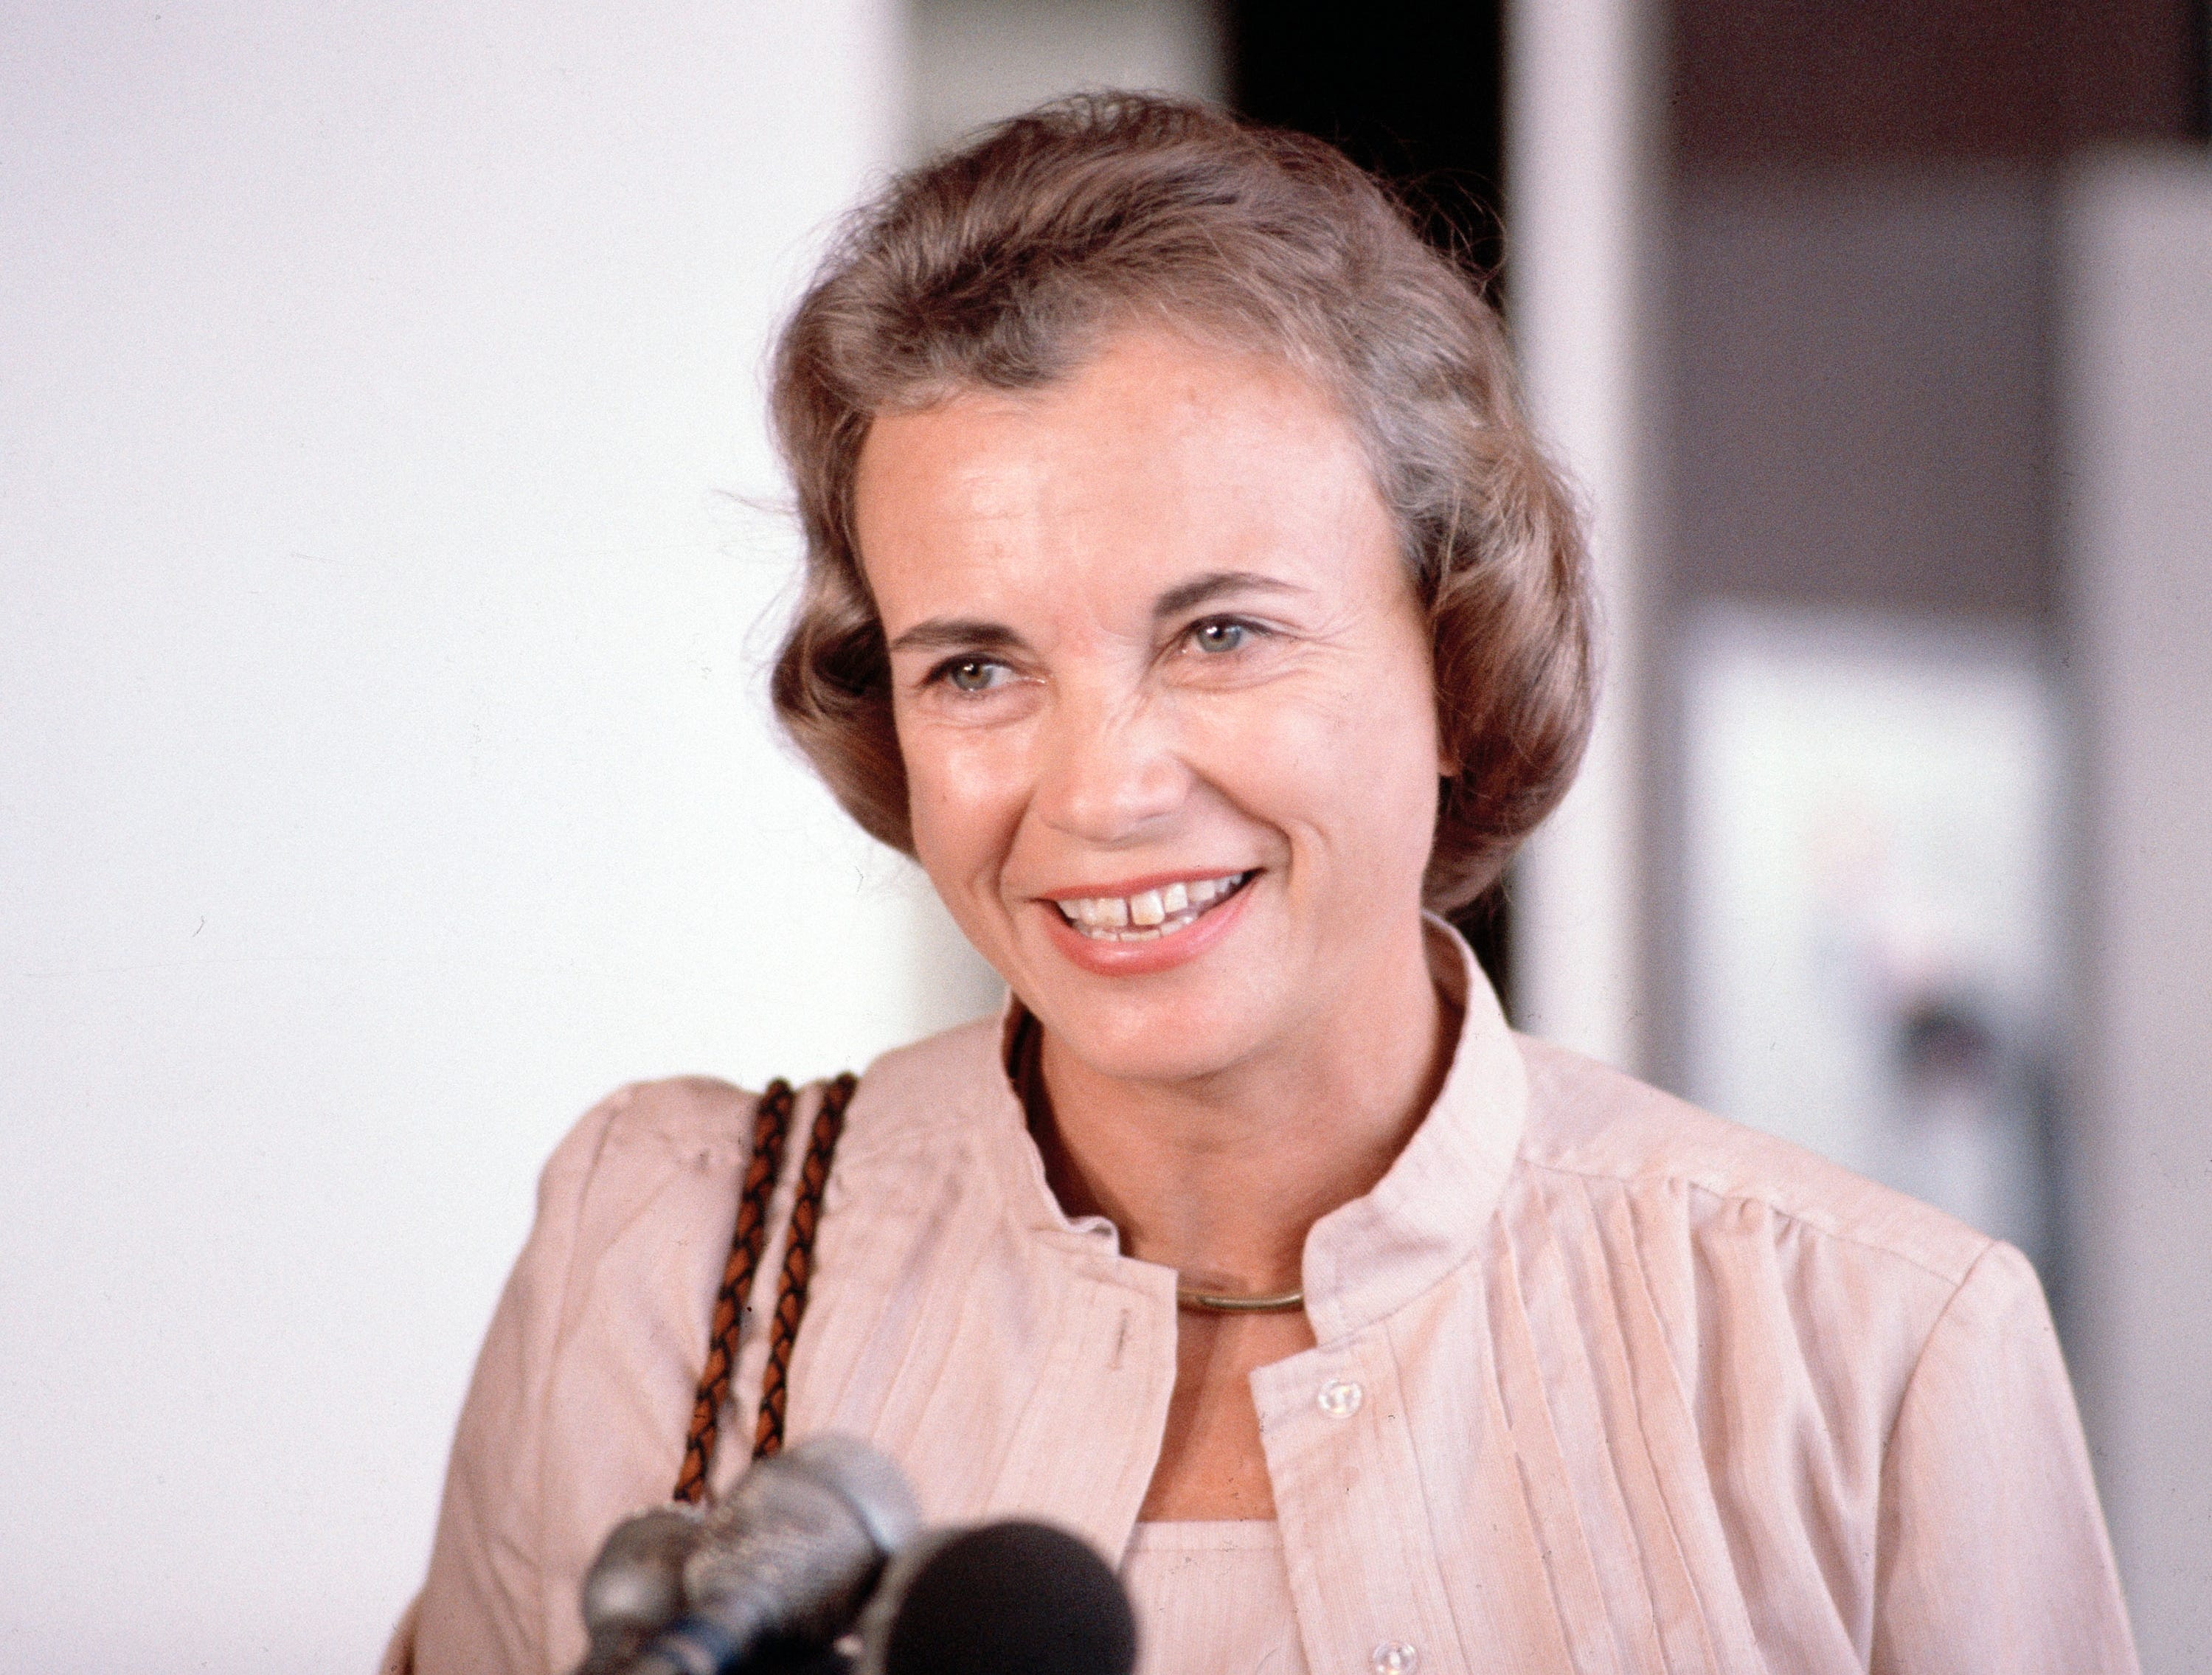 Supreme Court nominee Sandra Day O'Connor is shown on arrival at Washington National Airport, July 1981.